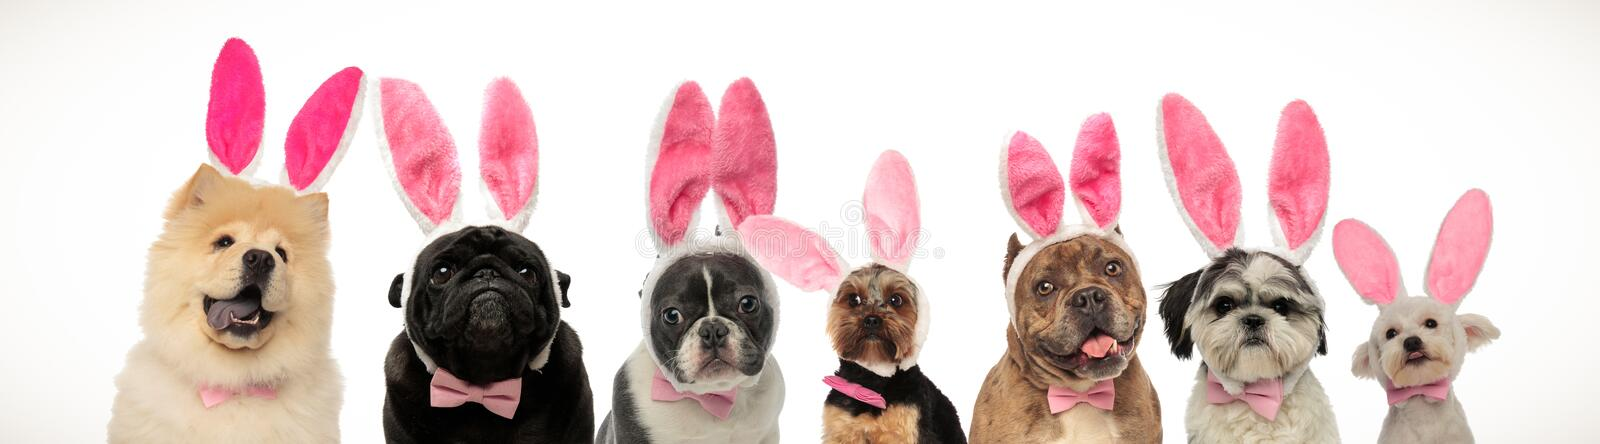 Large group of dogs wearing bunny ears for easter. On white background stock images